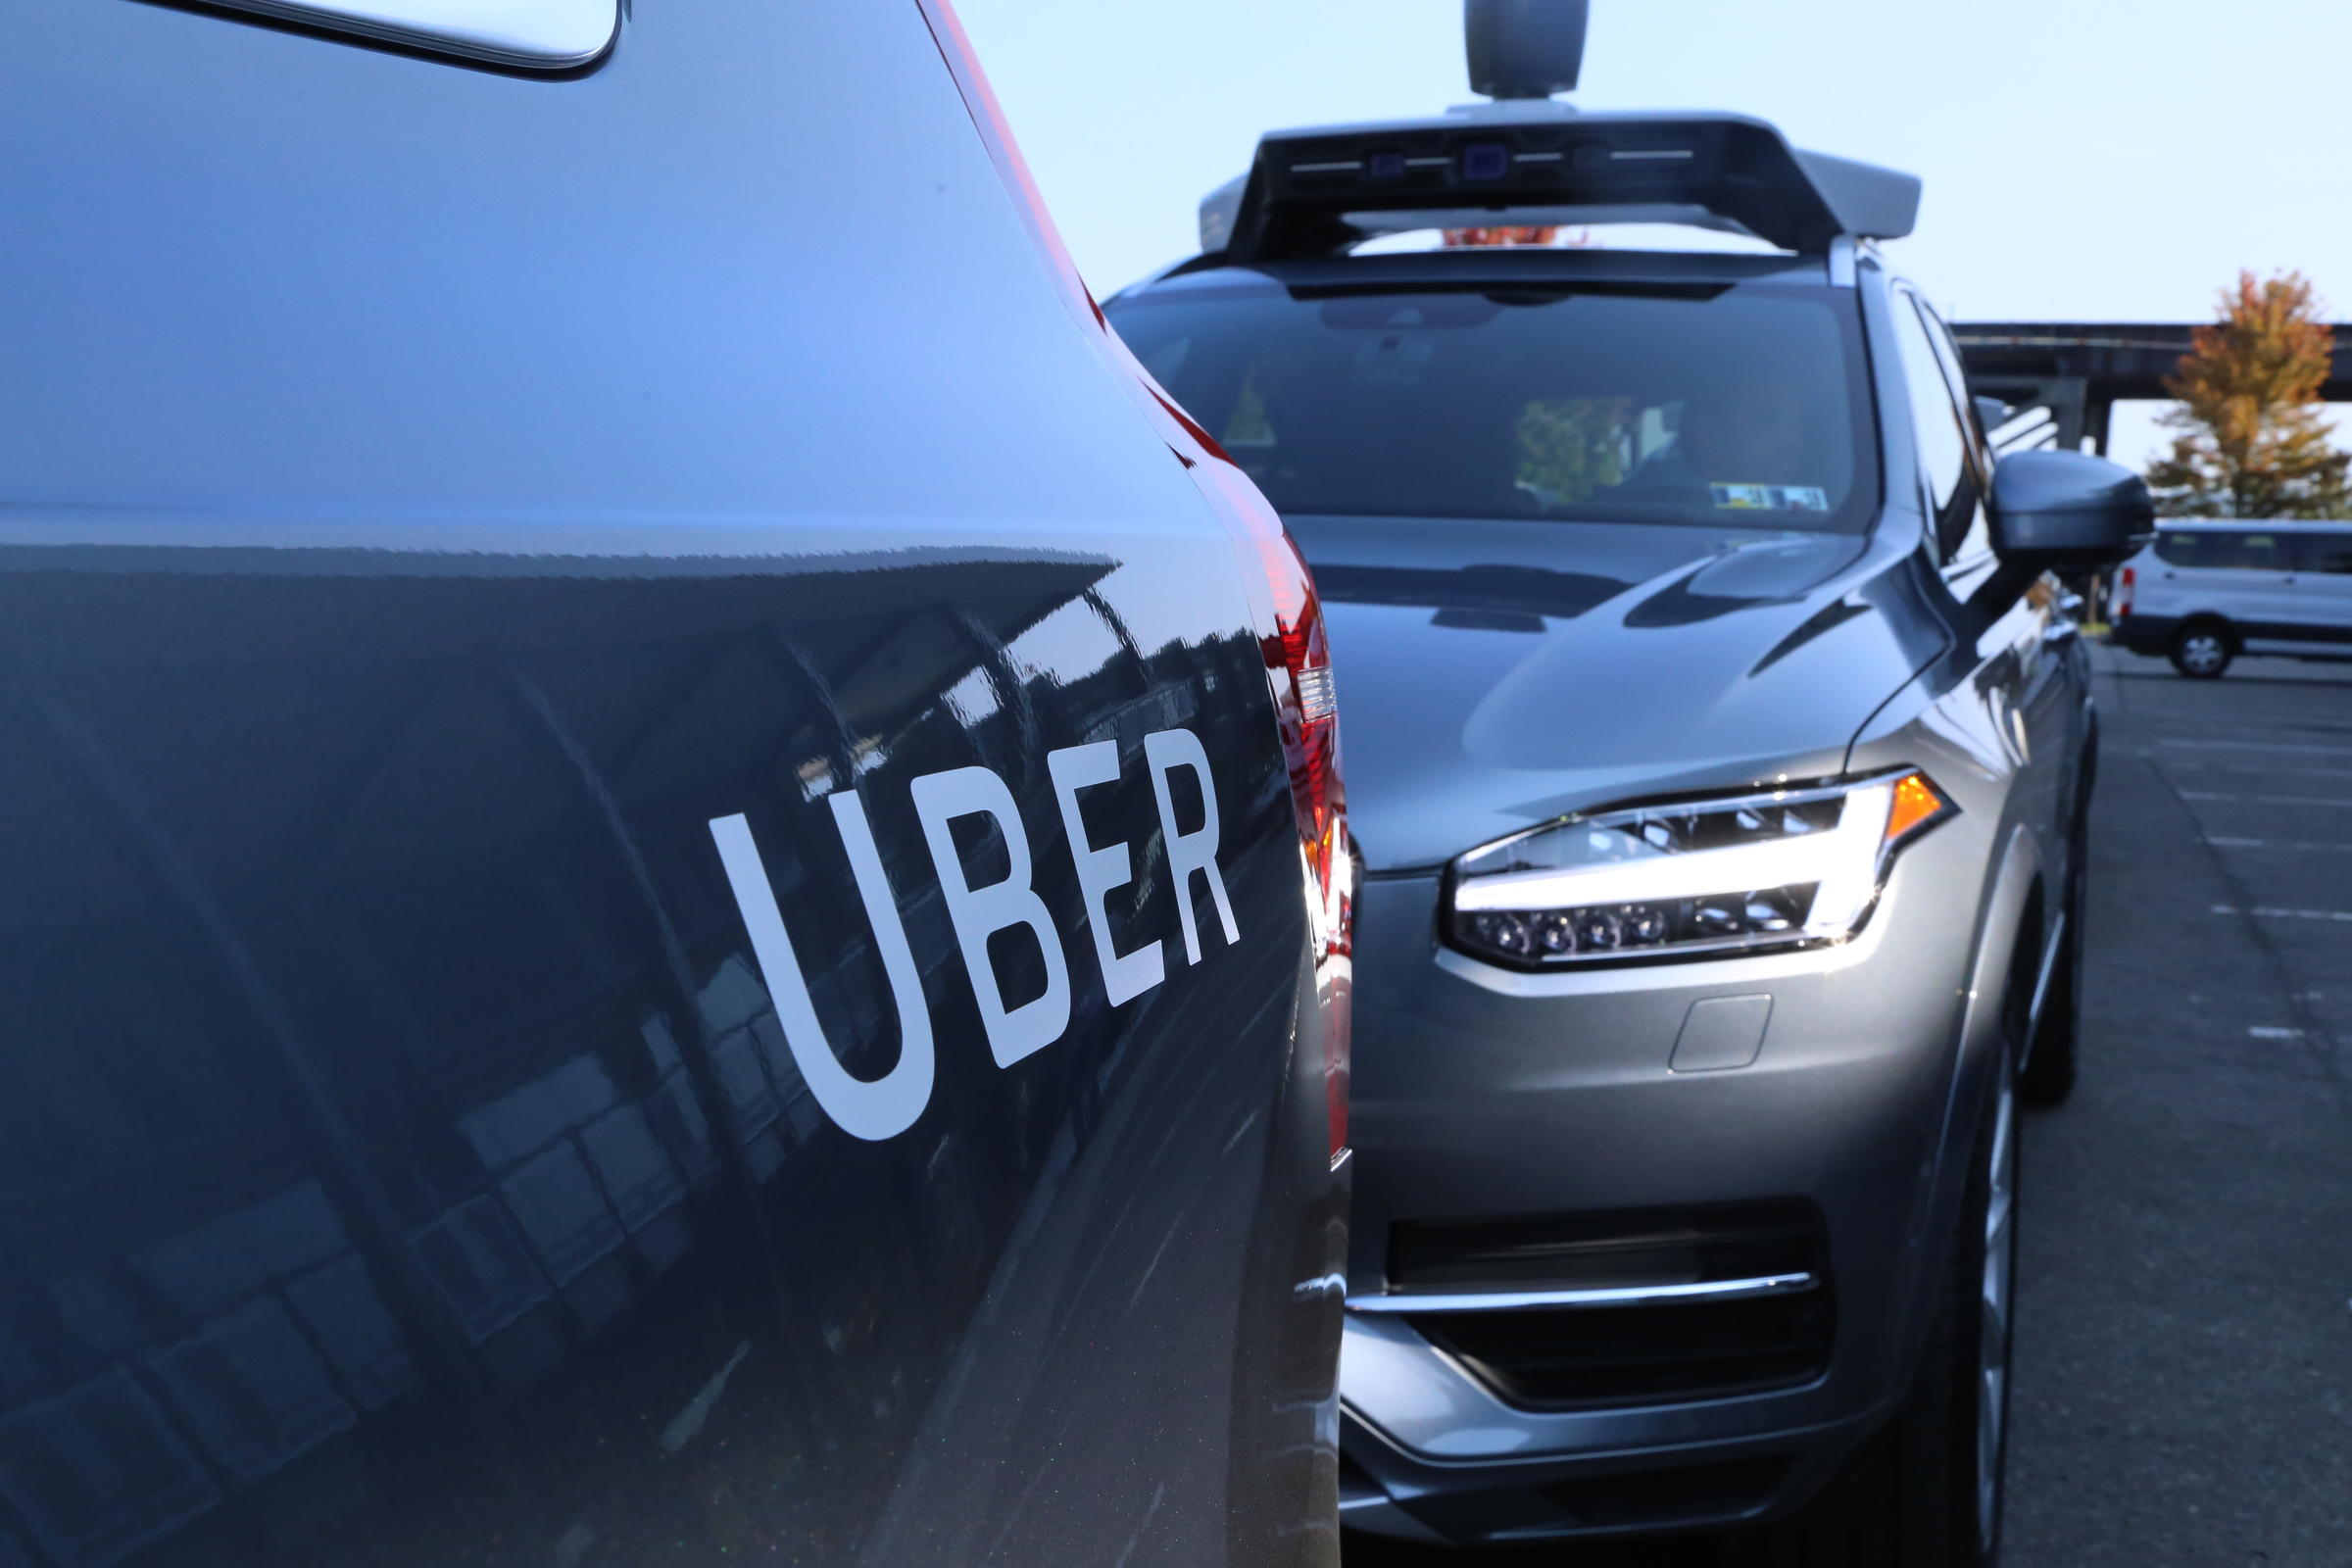 Arizona suspends Uber's driverless vehicle  testing after deadly accident